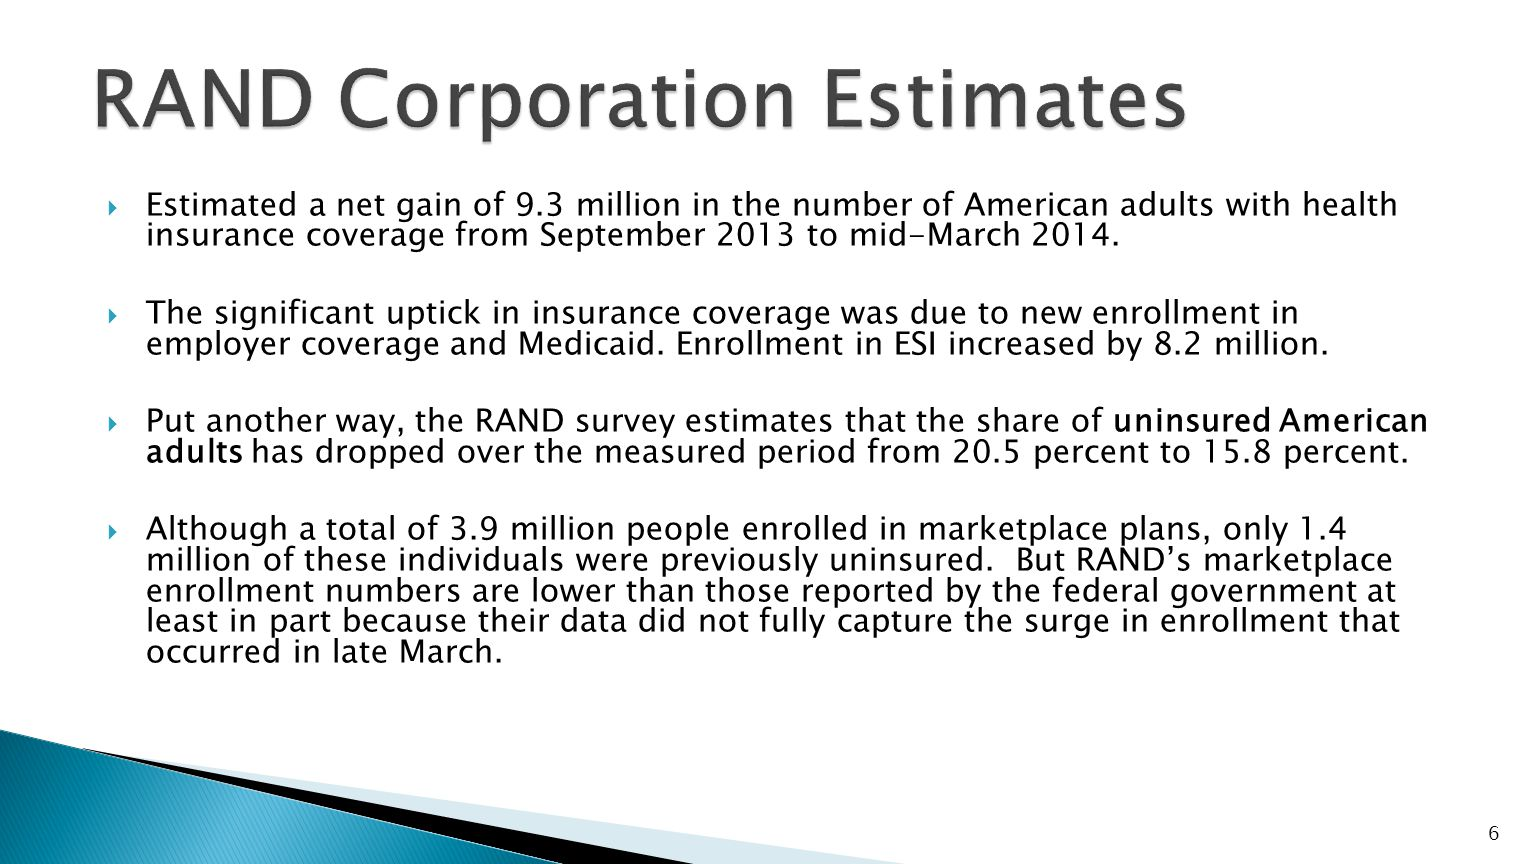  The number of uninsured adults age 18 to 64 fell by an estimated 5.4 million between September 2013 and early March 2014.